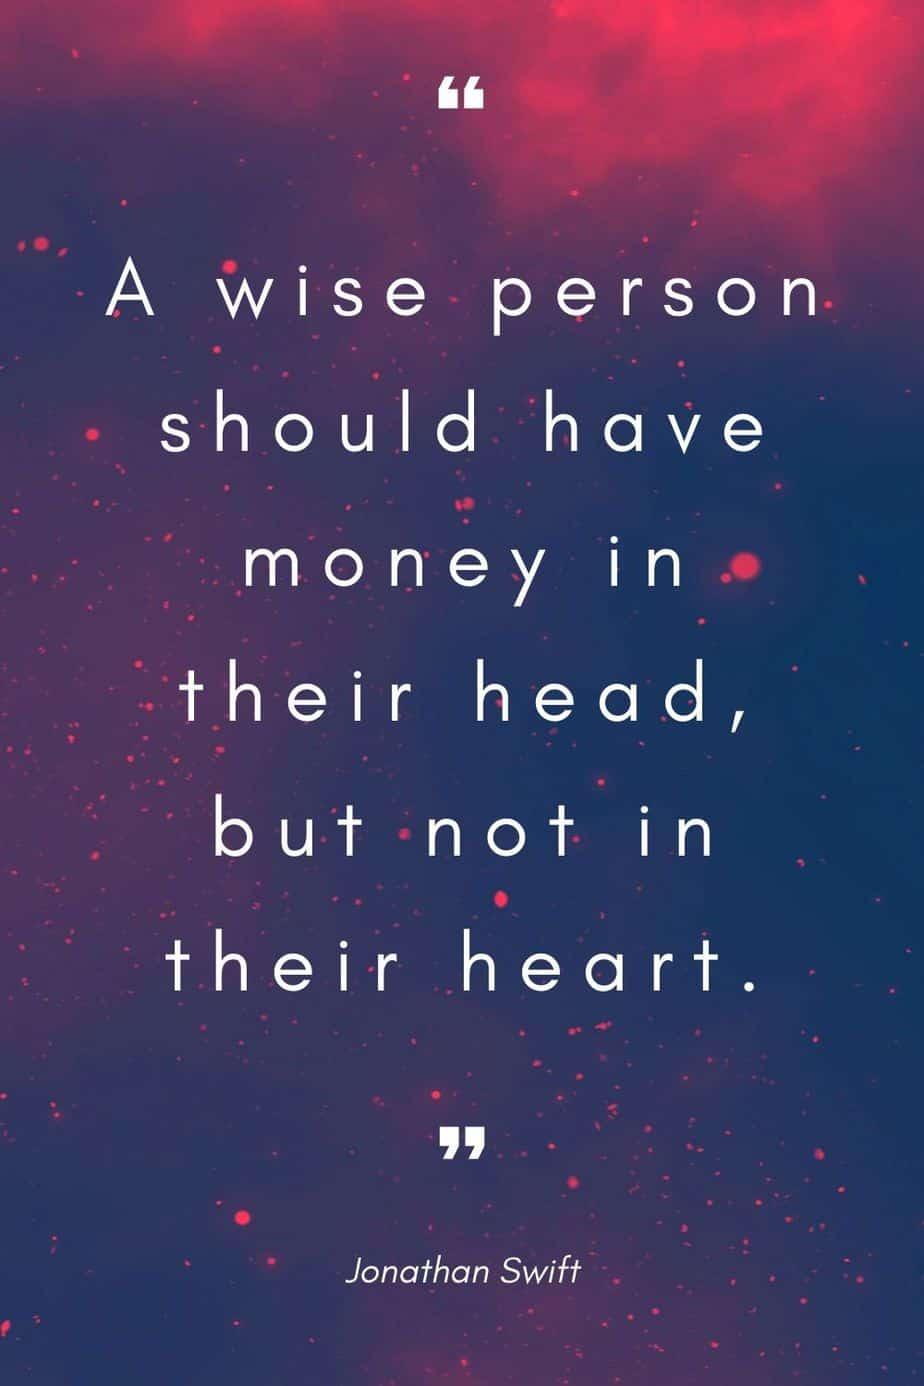 A wise person should have money in their head, but not in their heart